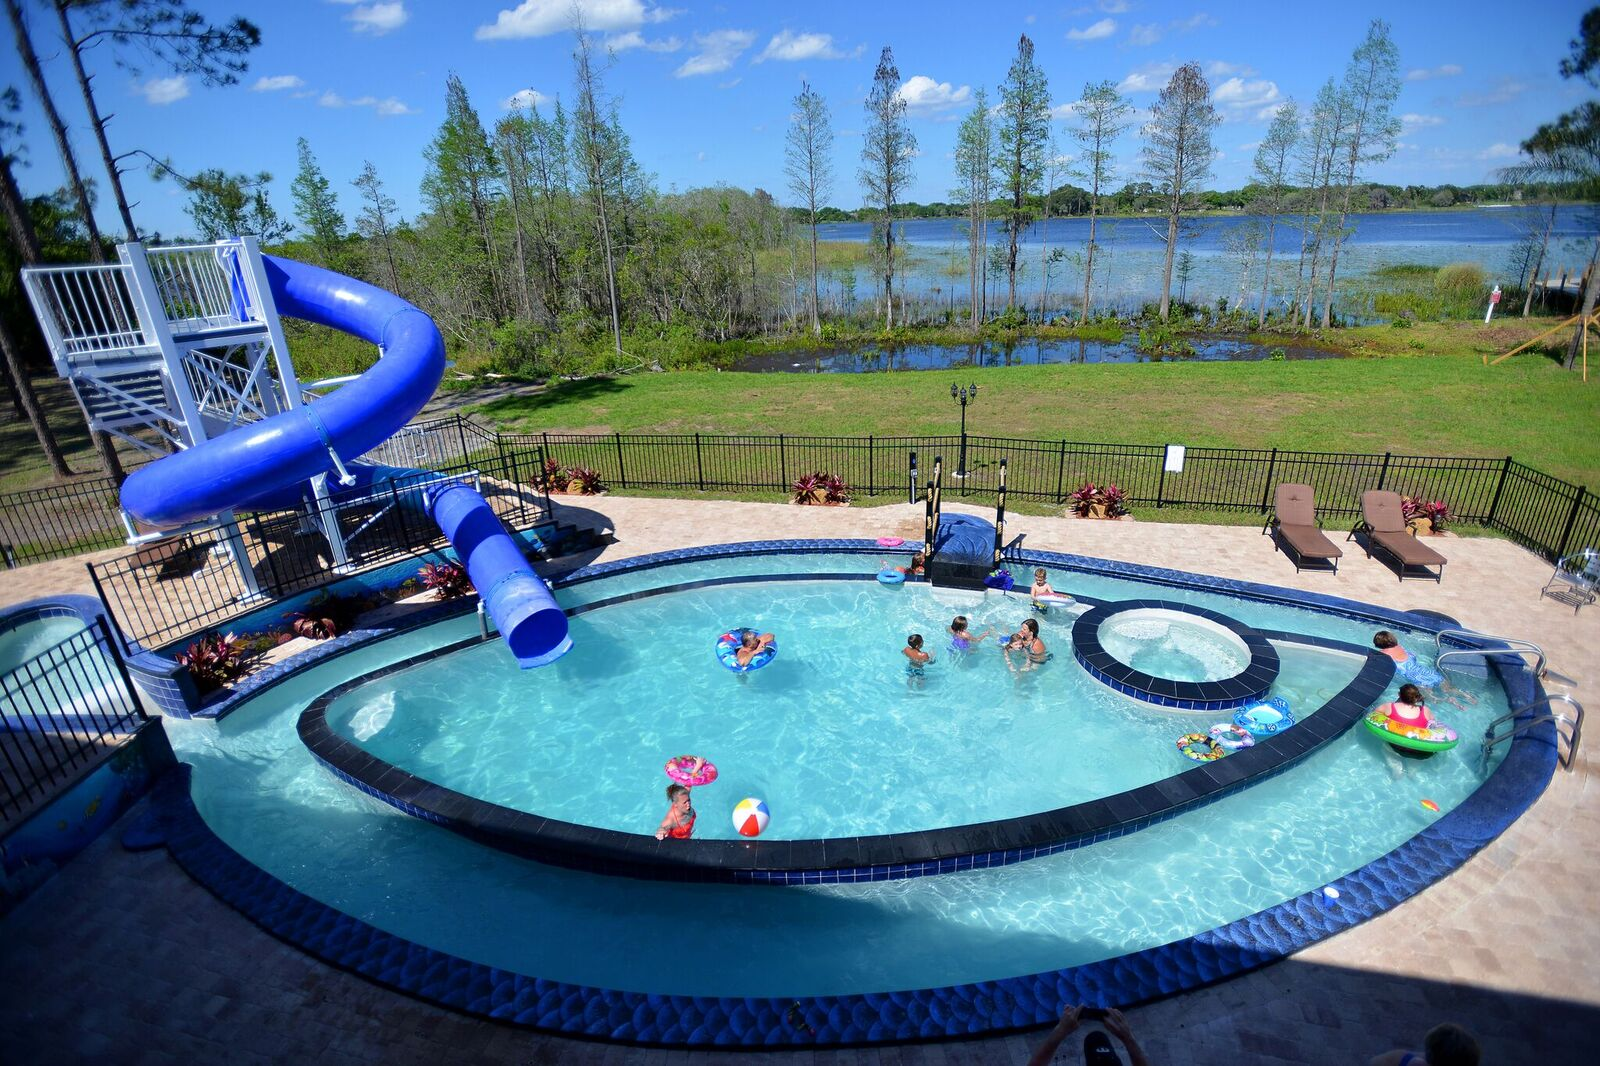 Pool With Lazy River And Waterslide At The Great Escape